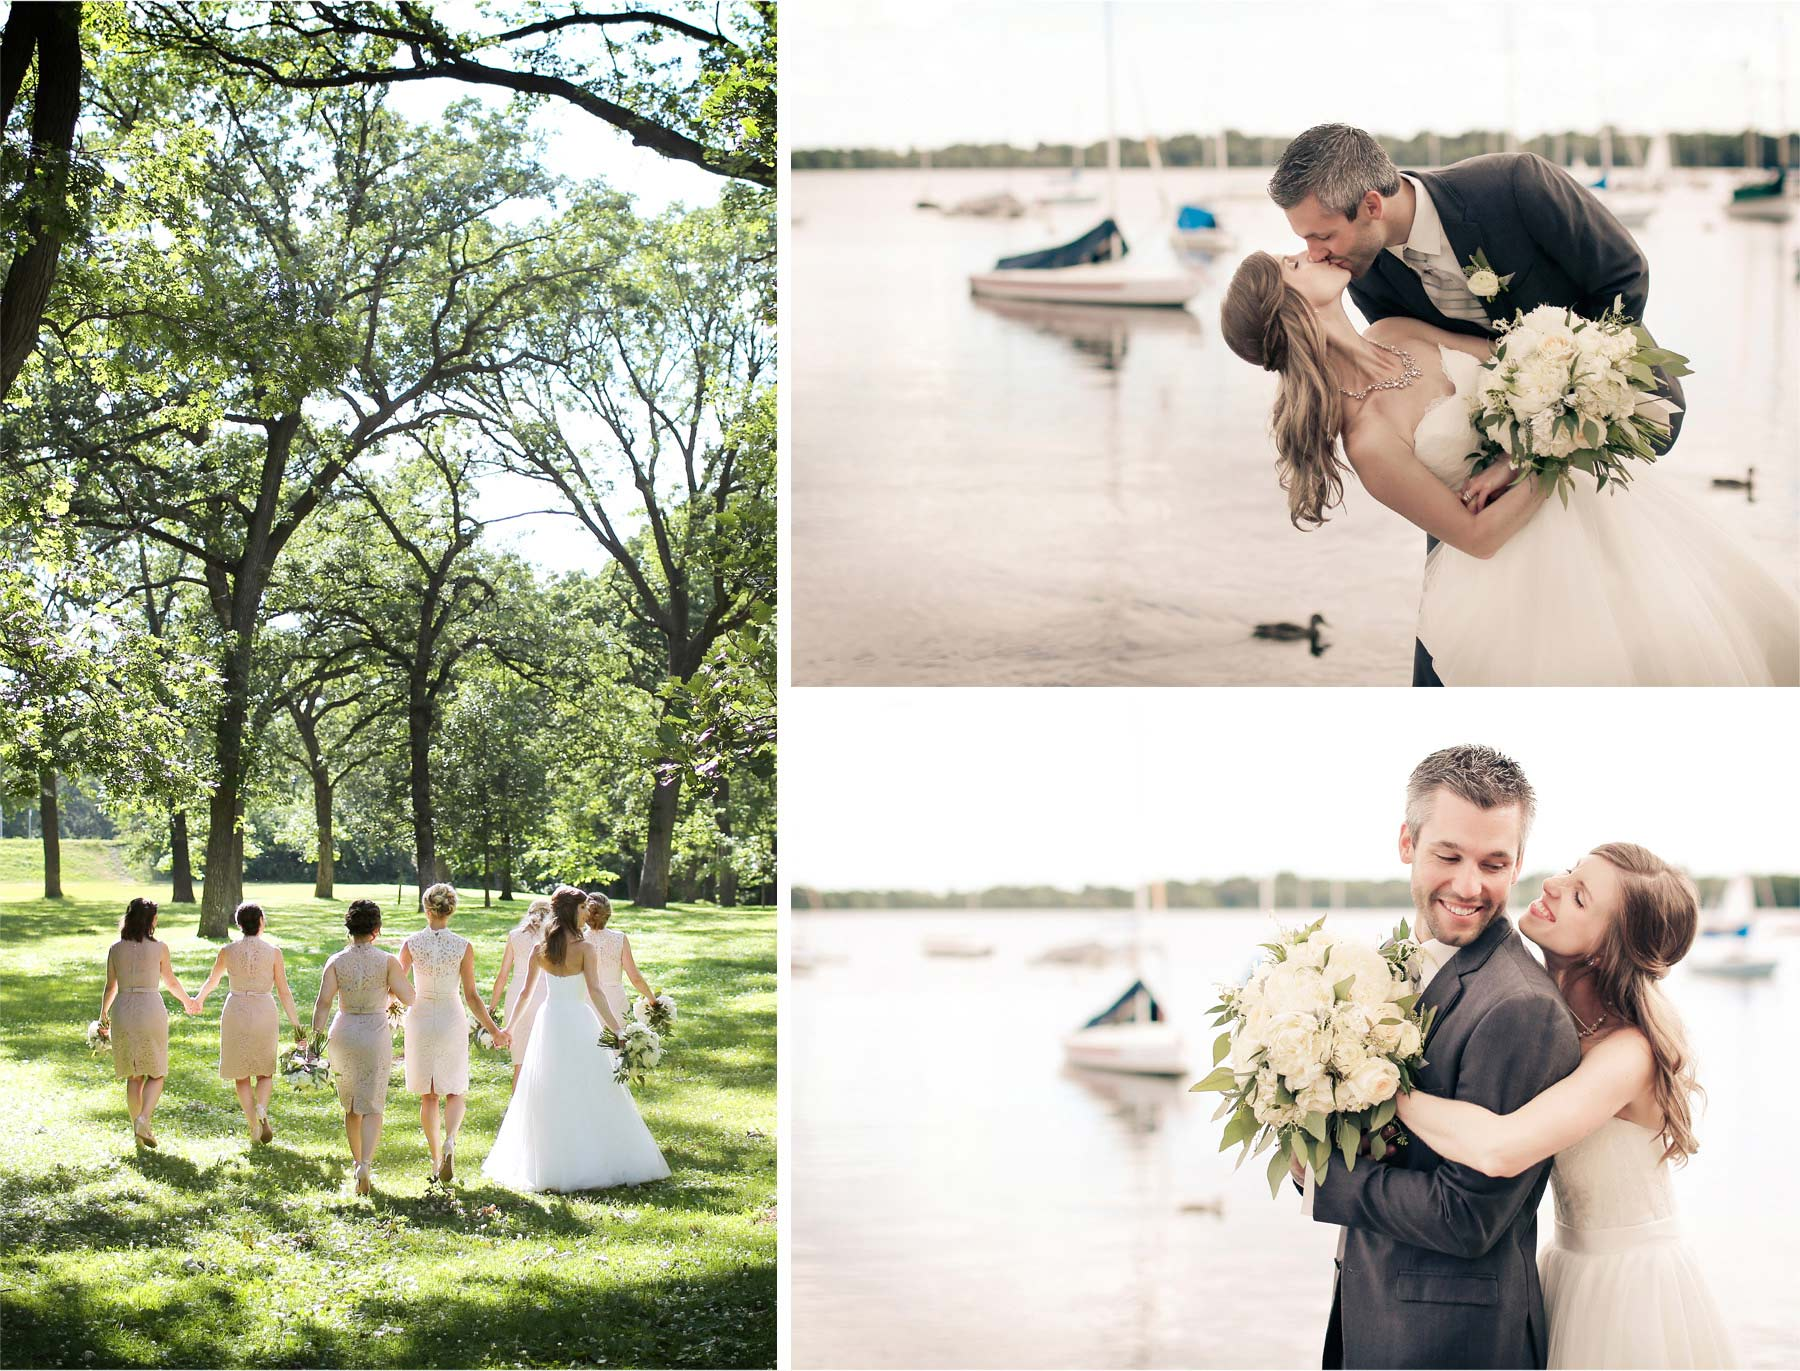 14-Minneapolis-Minnesota-Wedding-Photographer-by-Andrew-Vick-Photography-Summer-Woods-Lake-Harriet-Bride-Groom-Bridesmaids-Kiss-Dip-Embrace-Vintage-Katie-and-Travis.jpg